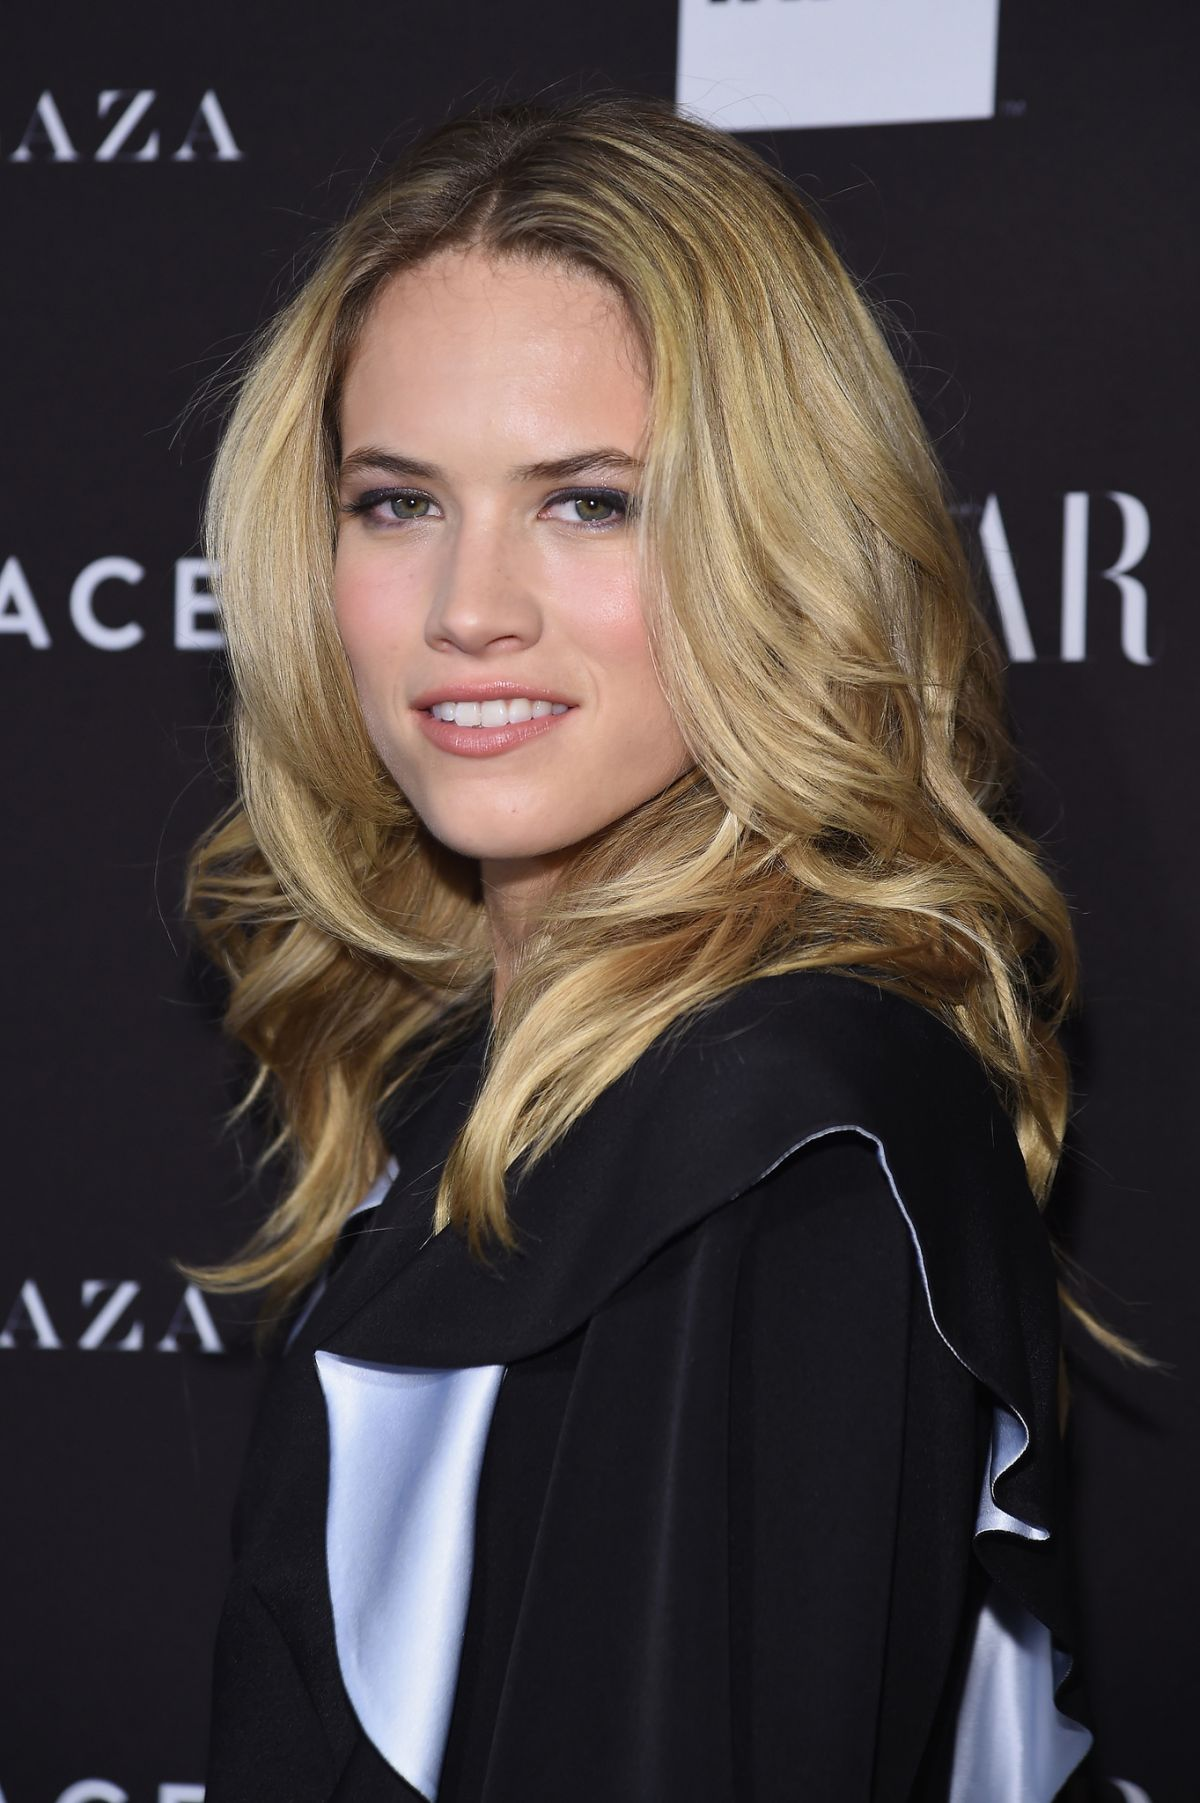 CODY HORN at 2015 Harper's Bazaar Icons Event in New York 09/16/2015